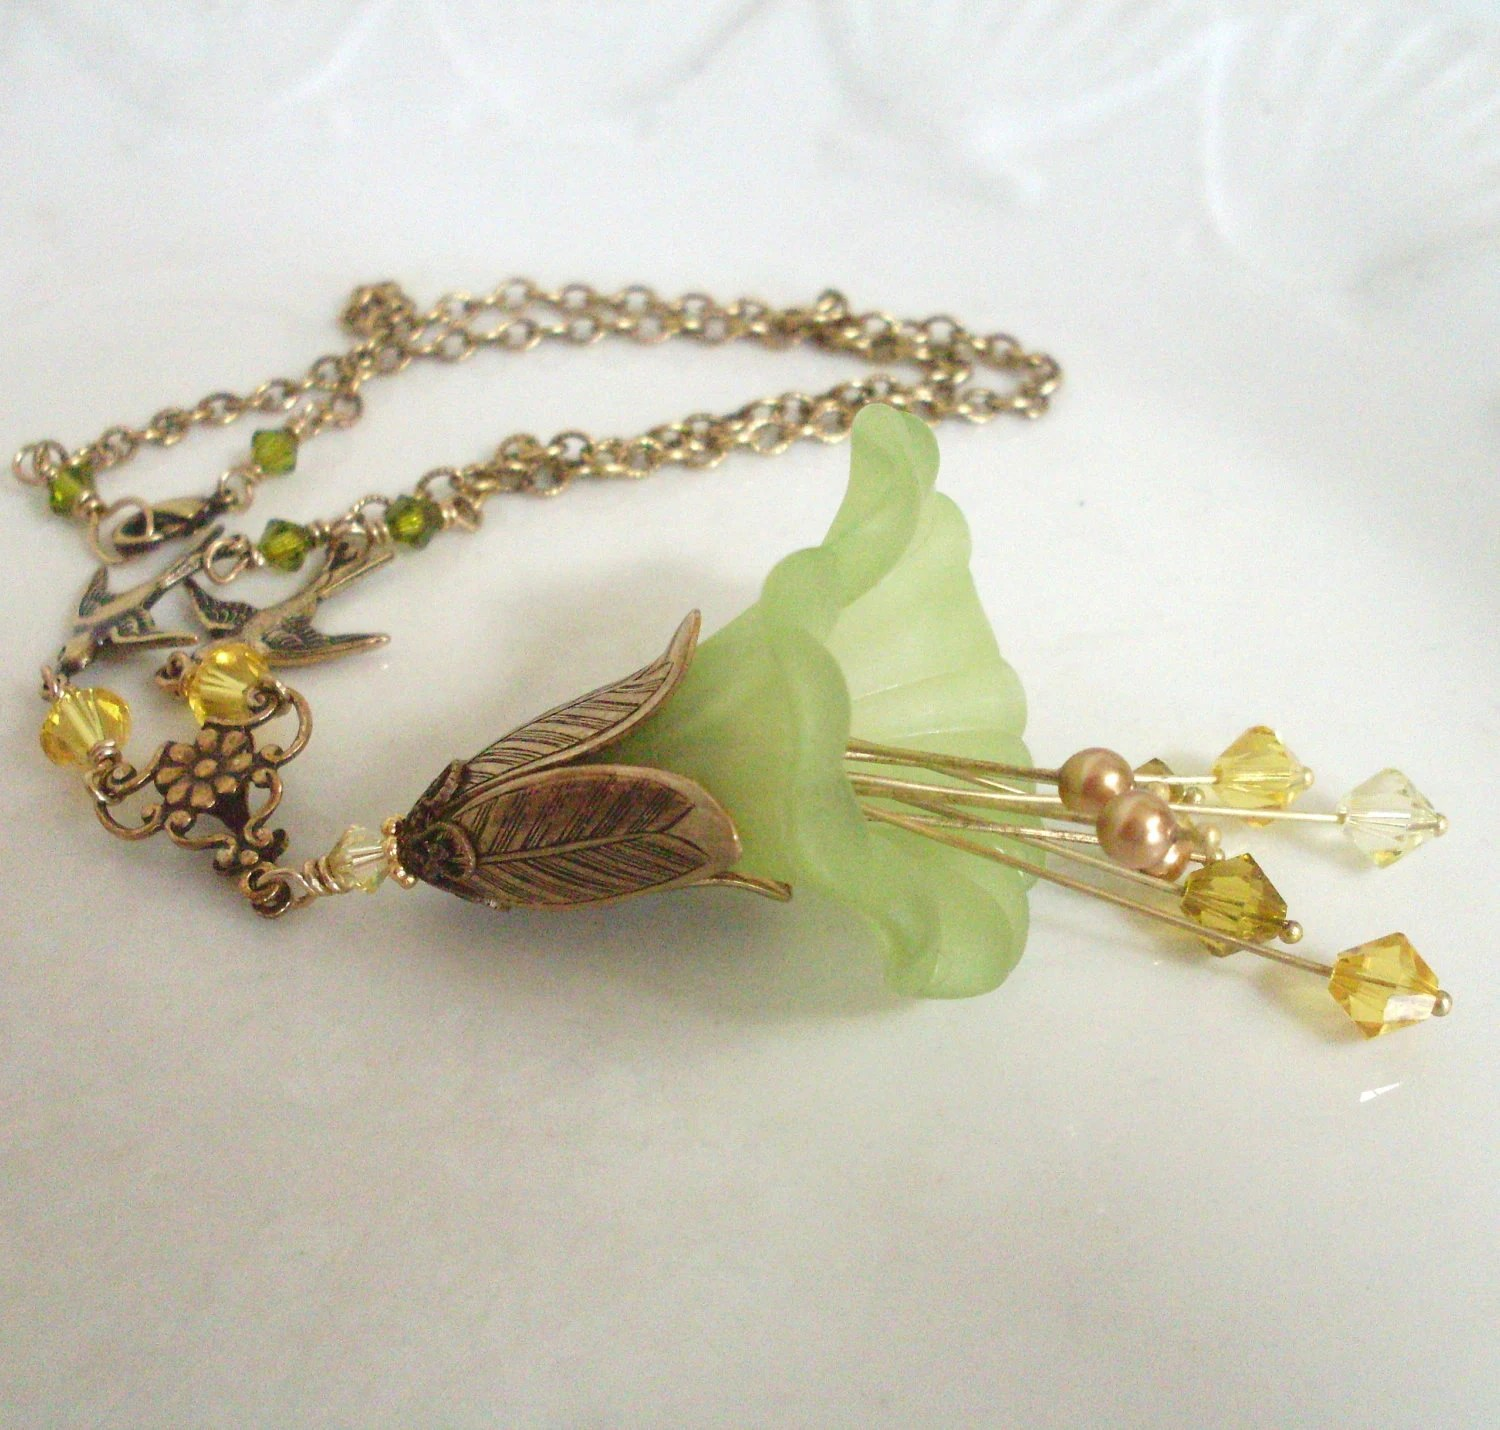 Lucite flower necklace, green, yellow. Flower pendant with stamens, birds, crystal and brass. Lucite flower jewelry, brass jewelry. - ArtfulTrinkets1